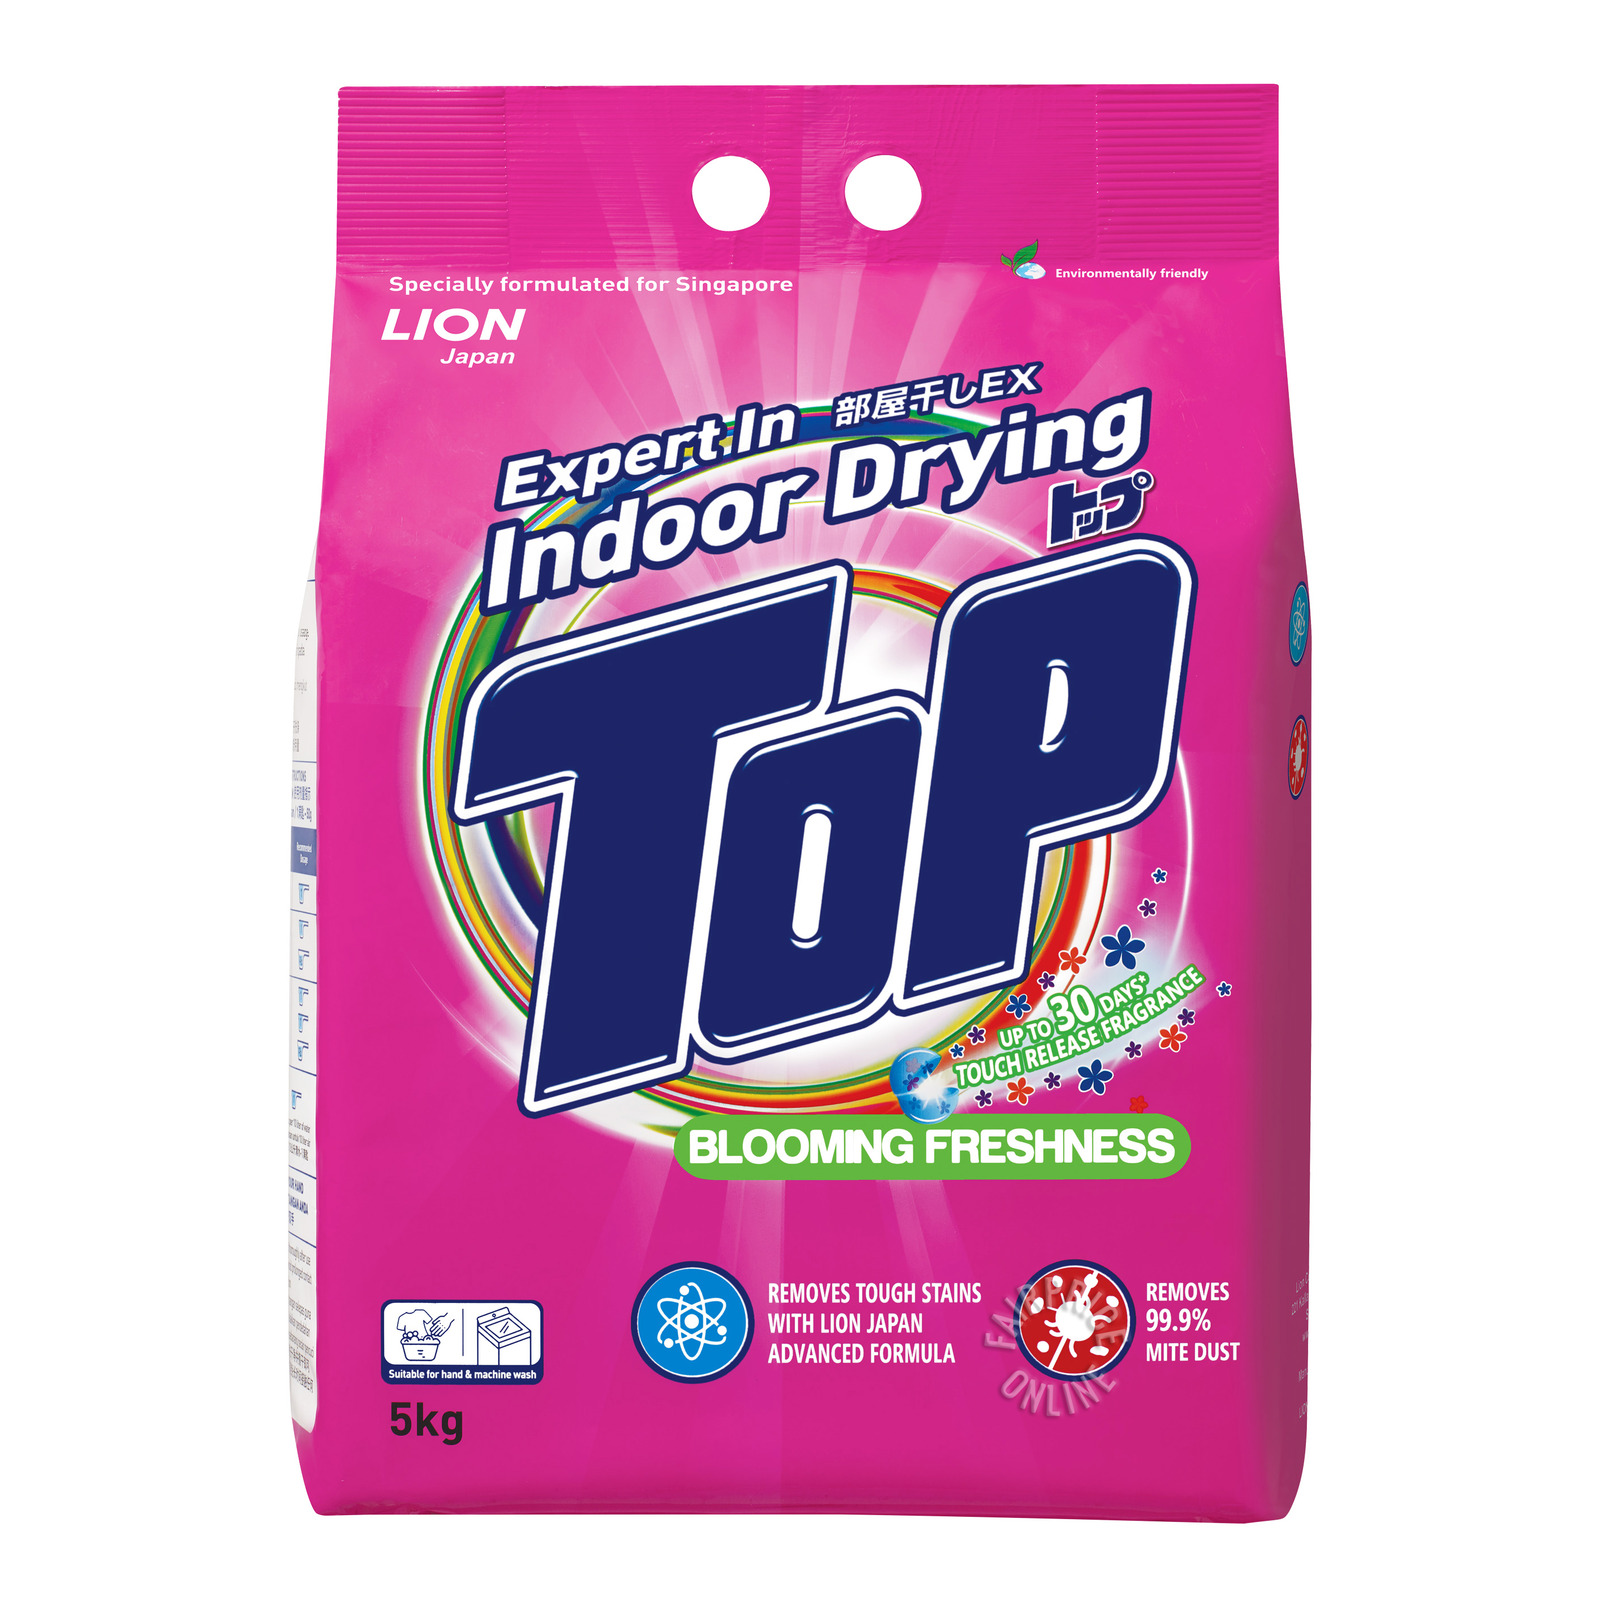 Top Indoor Drying Washing Powder - Blooming Freshness